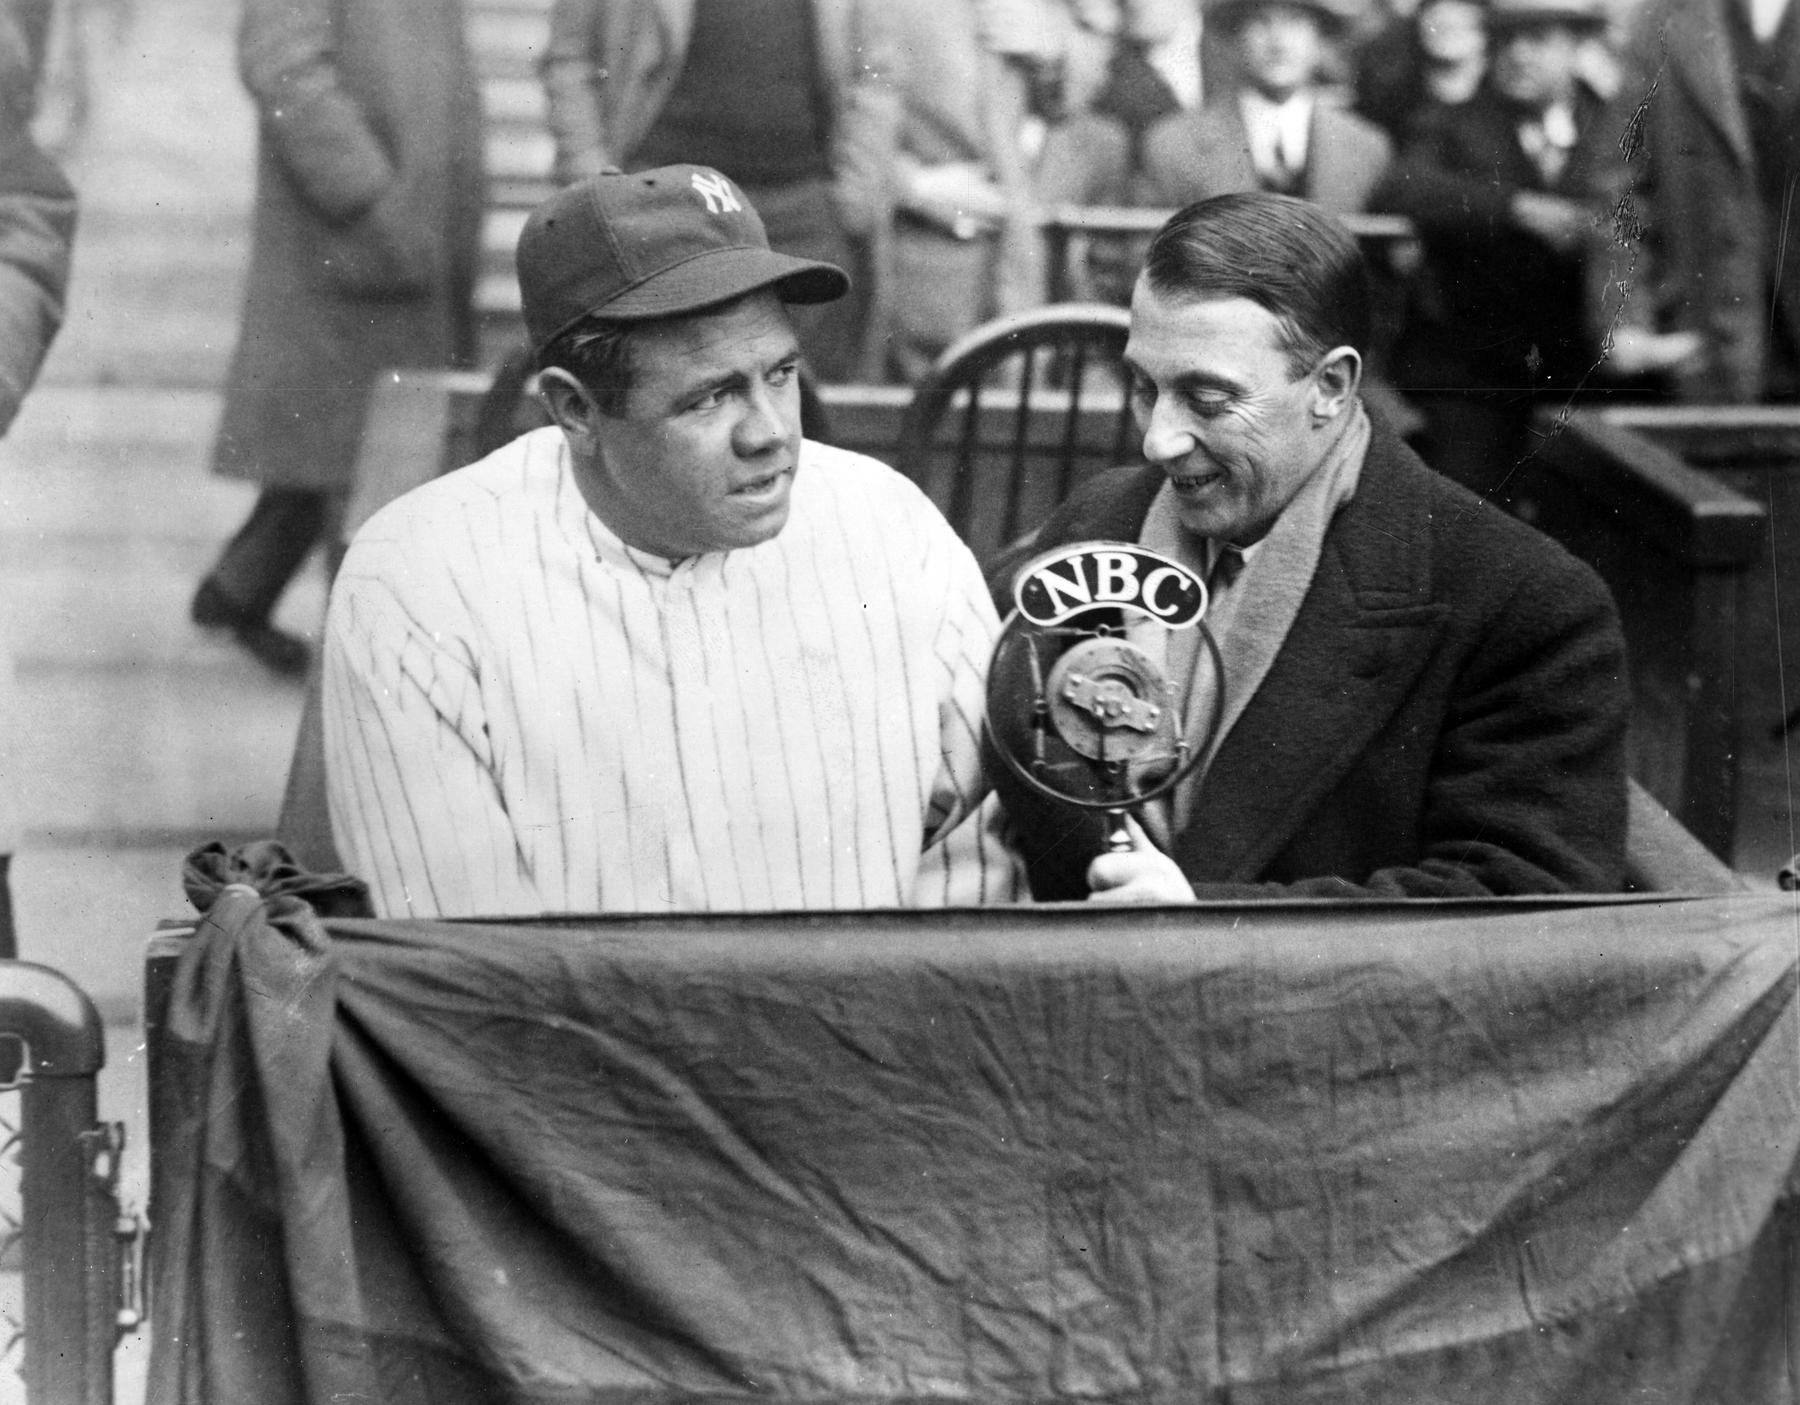 Graham McNamee conducting an interview with New York Yankee Babe Ruth for NBC. BL-1389.68 (National Baseball Hall of Fame Library)